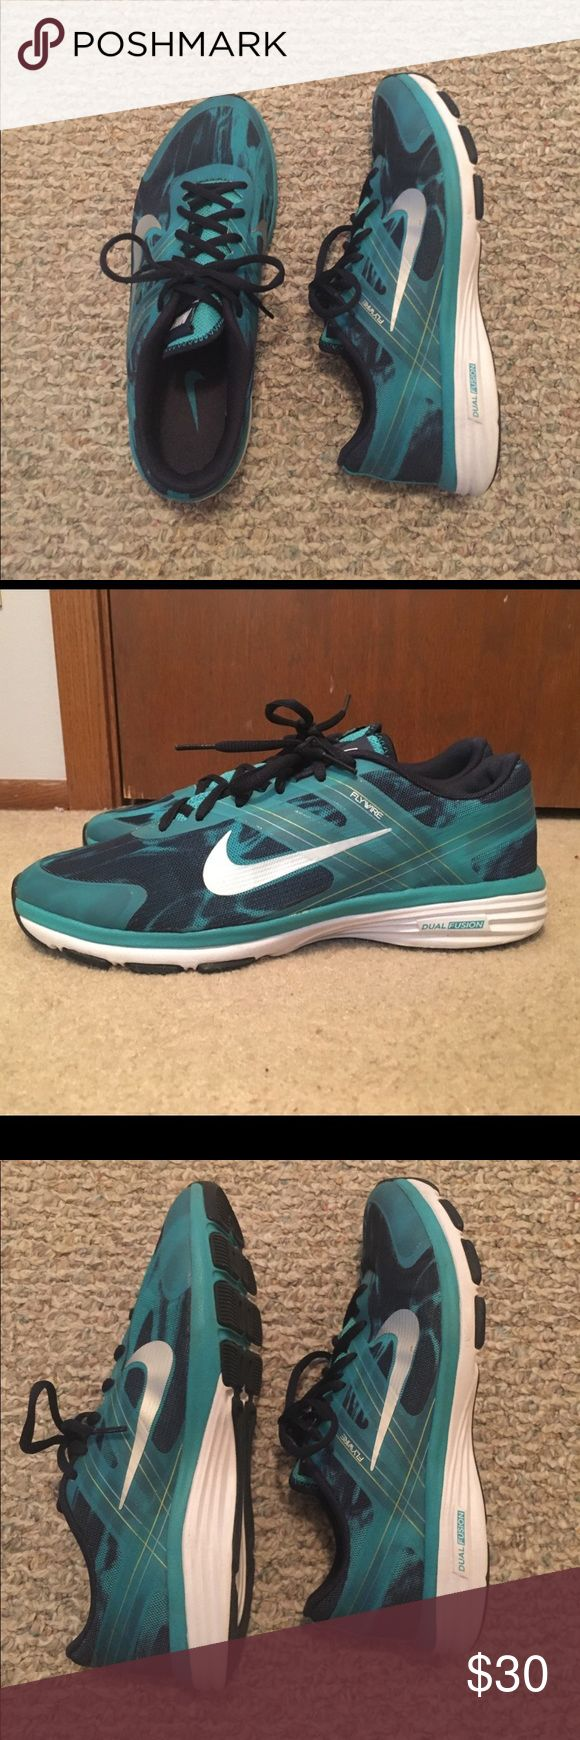 Nike‼️ dual fusion training sneaker Teal and blue marble color! Size  9. Barely been worn. Great condition! Nike Shoes Sneakers